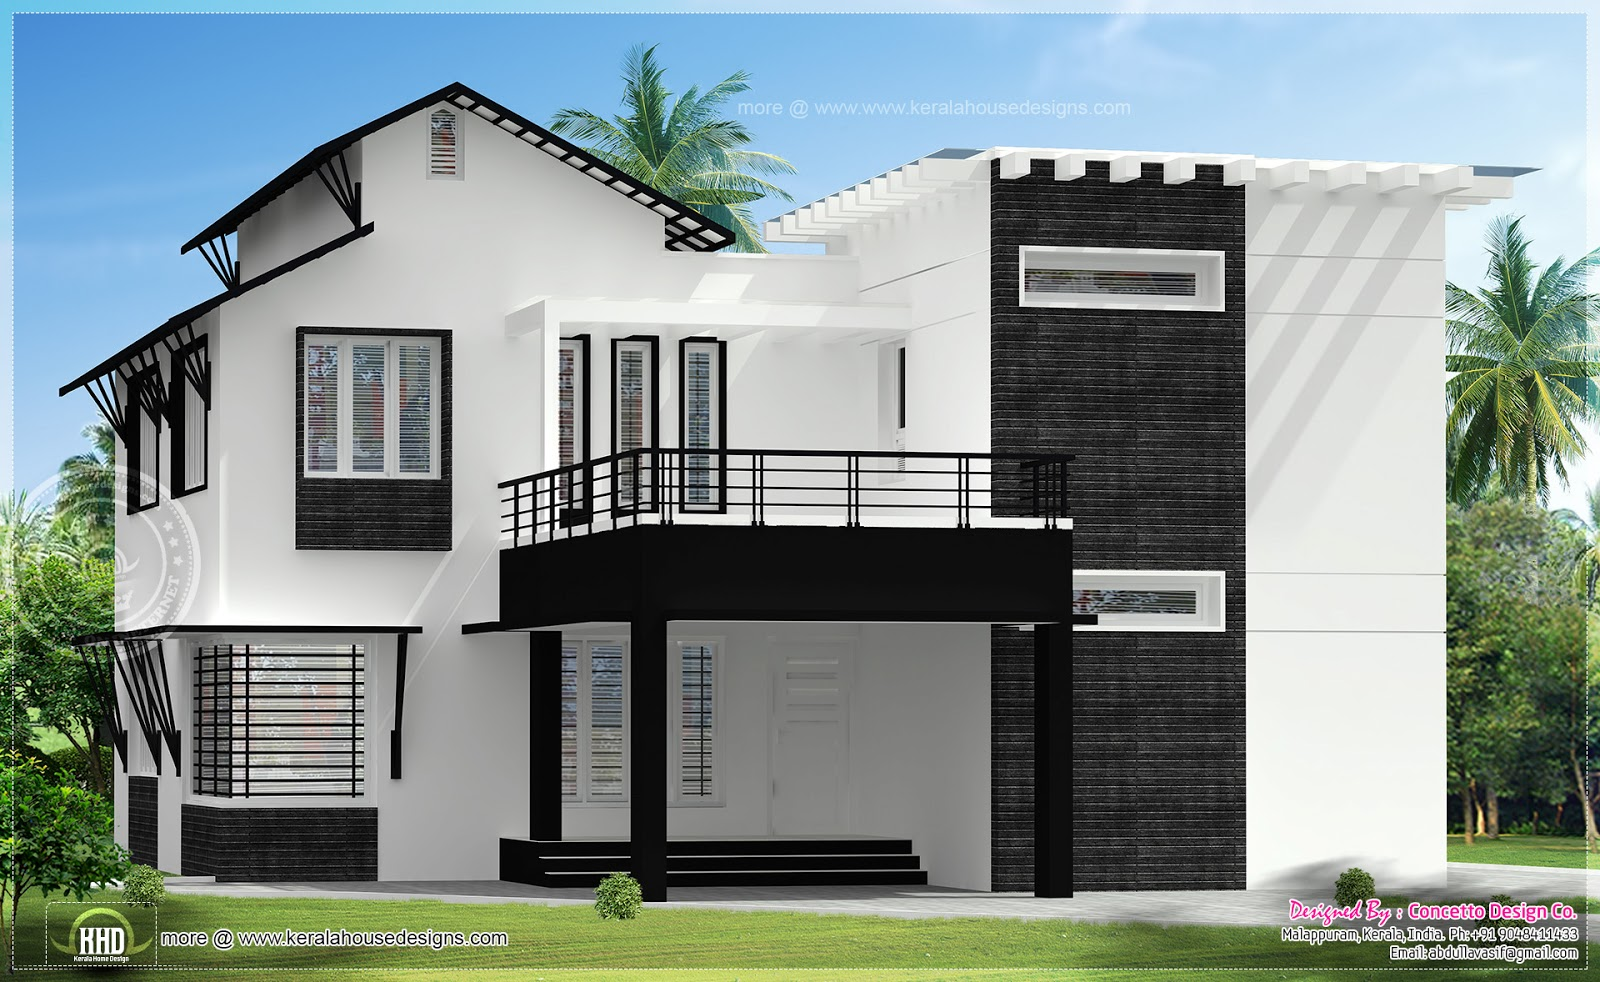 5 different house exteriors by concetto design kerala for House elevation design